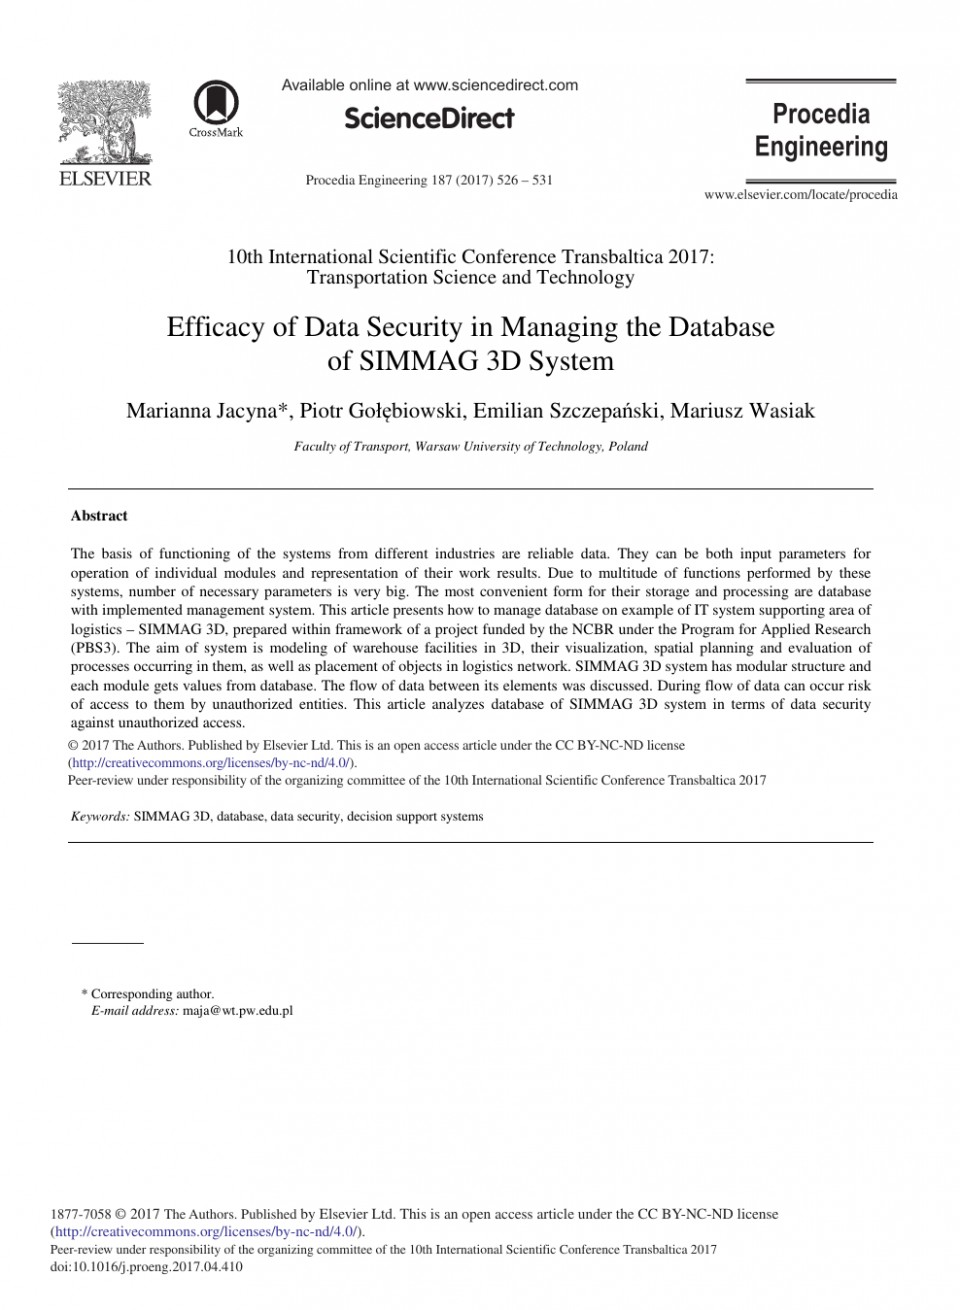 004 Database Security Research Paper Fascinating Abstract 960